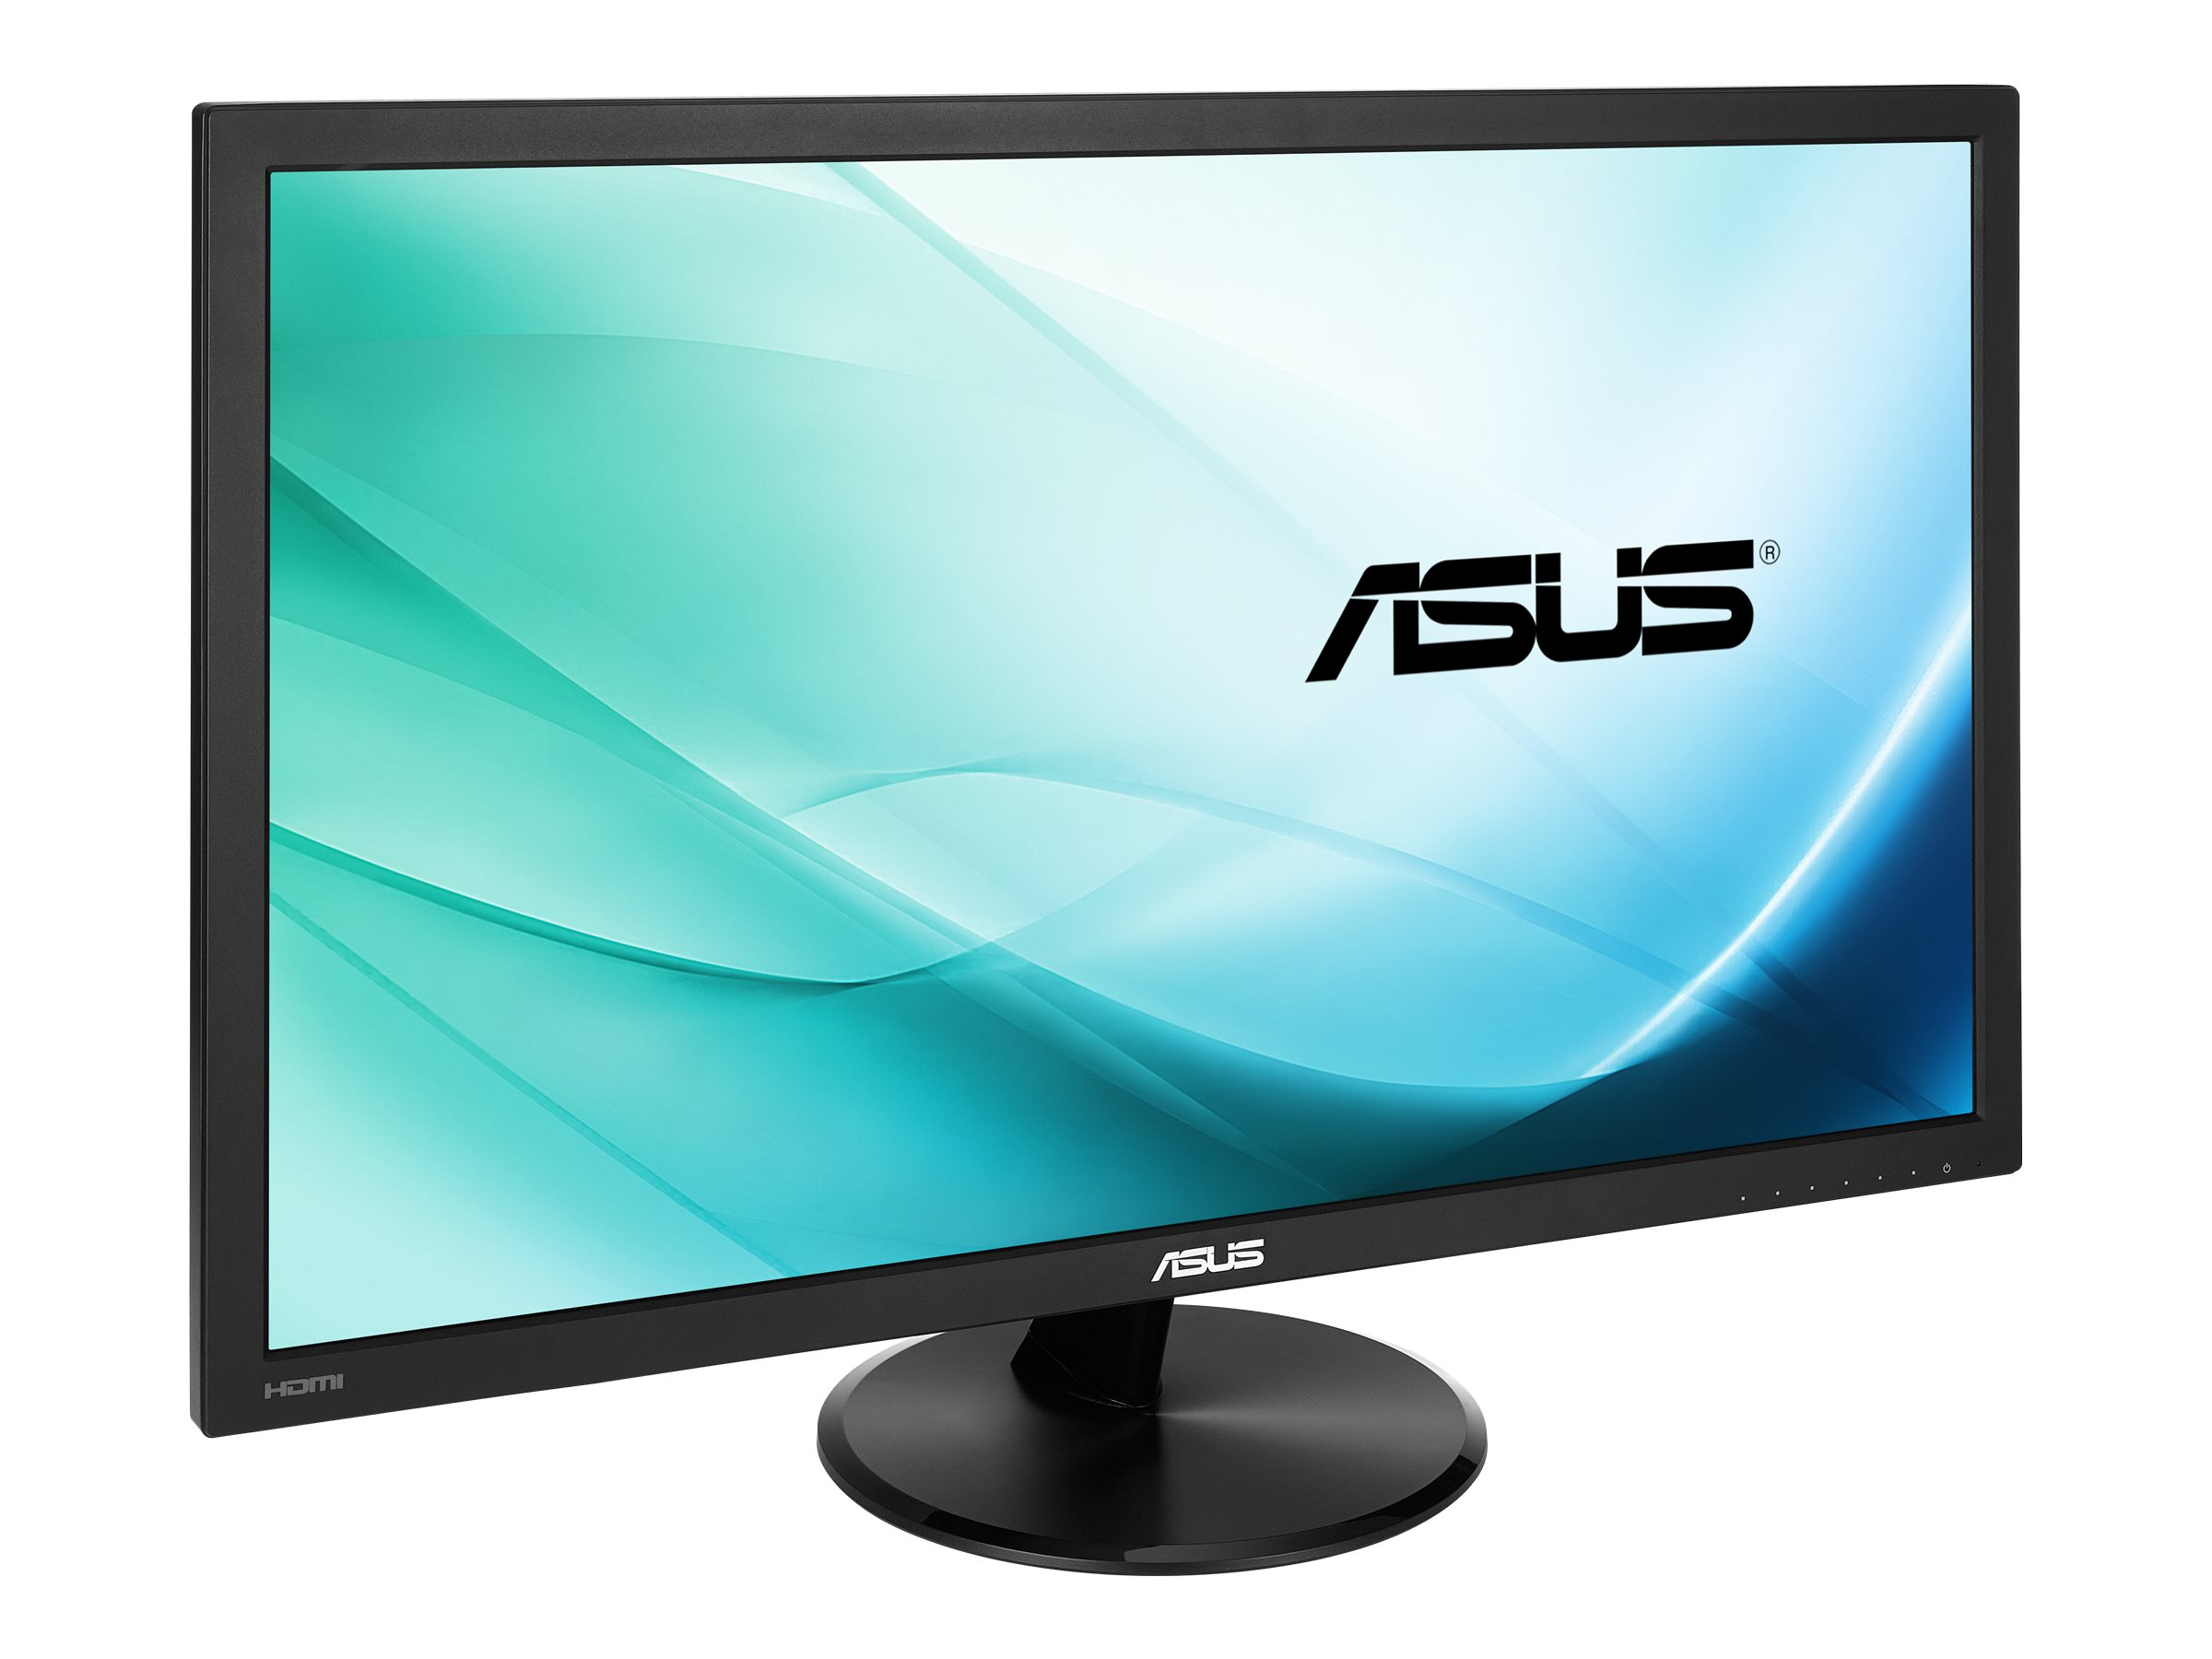 Asus 27 VP278H-P Full HD LED-LCD Monitor, Black, VP278H-P